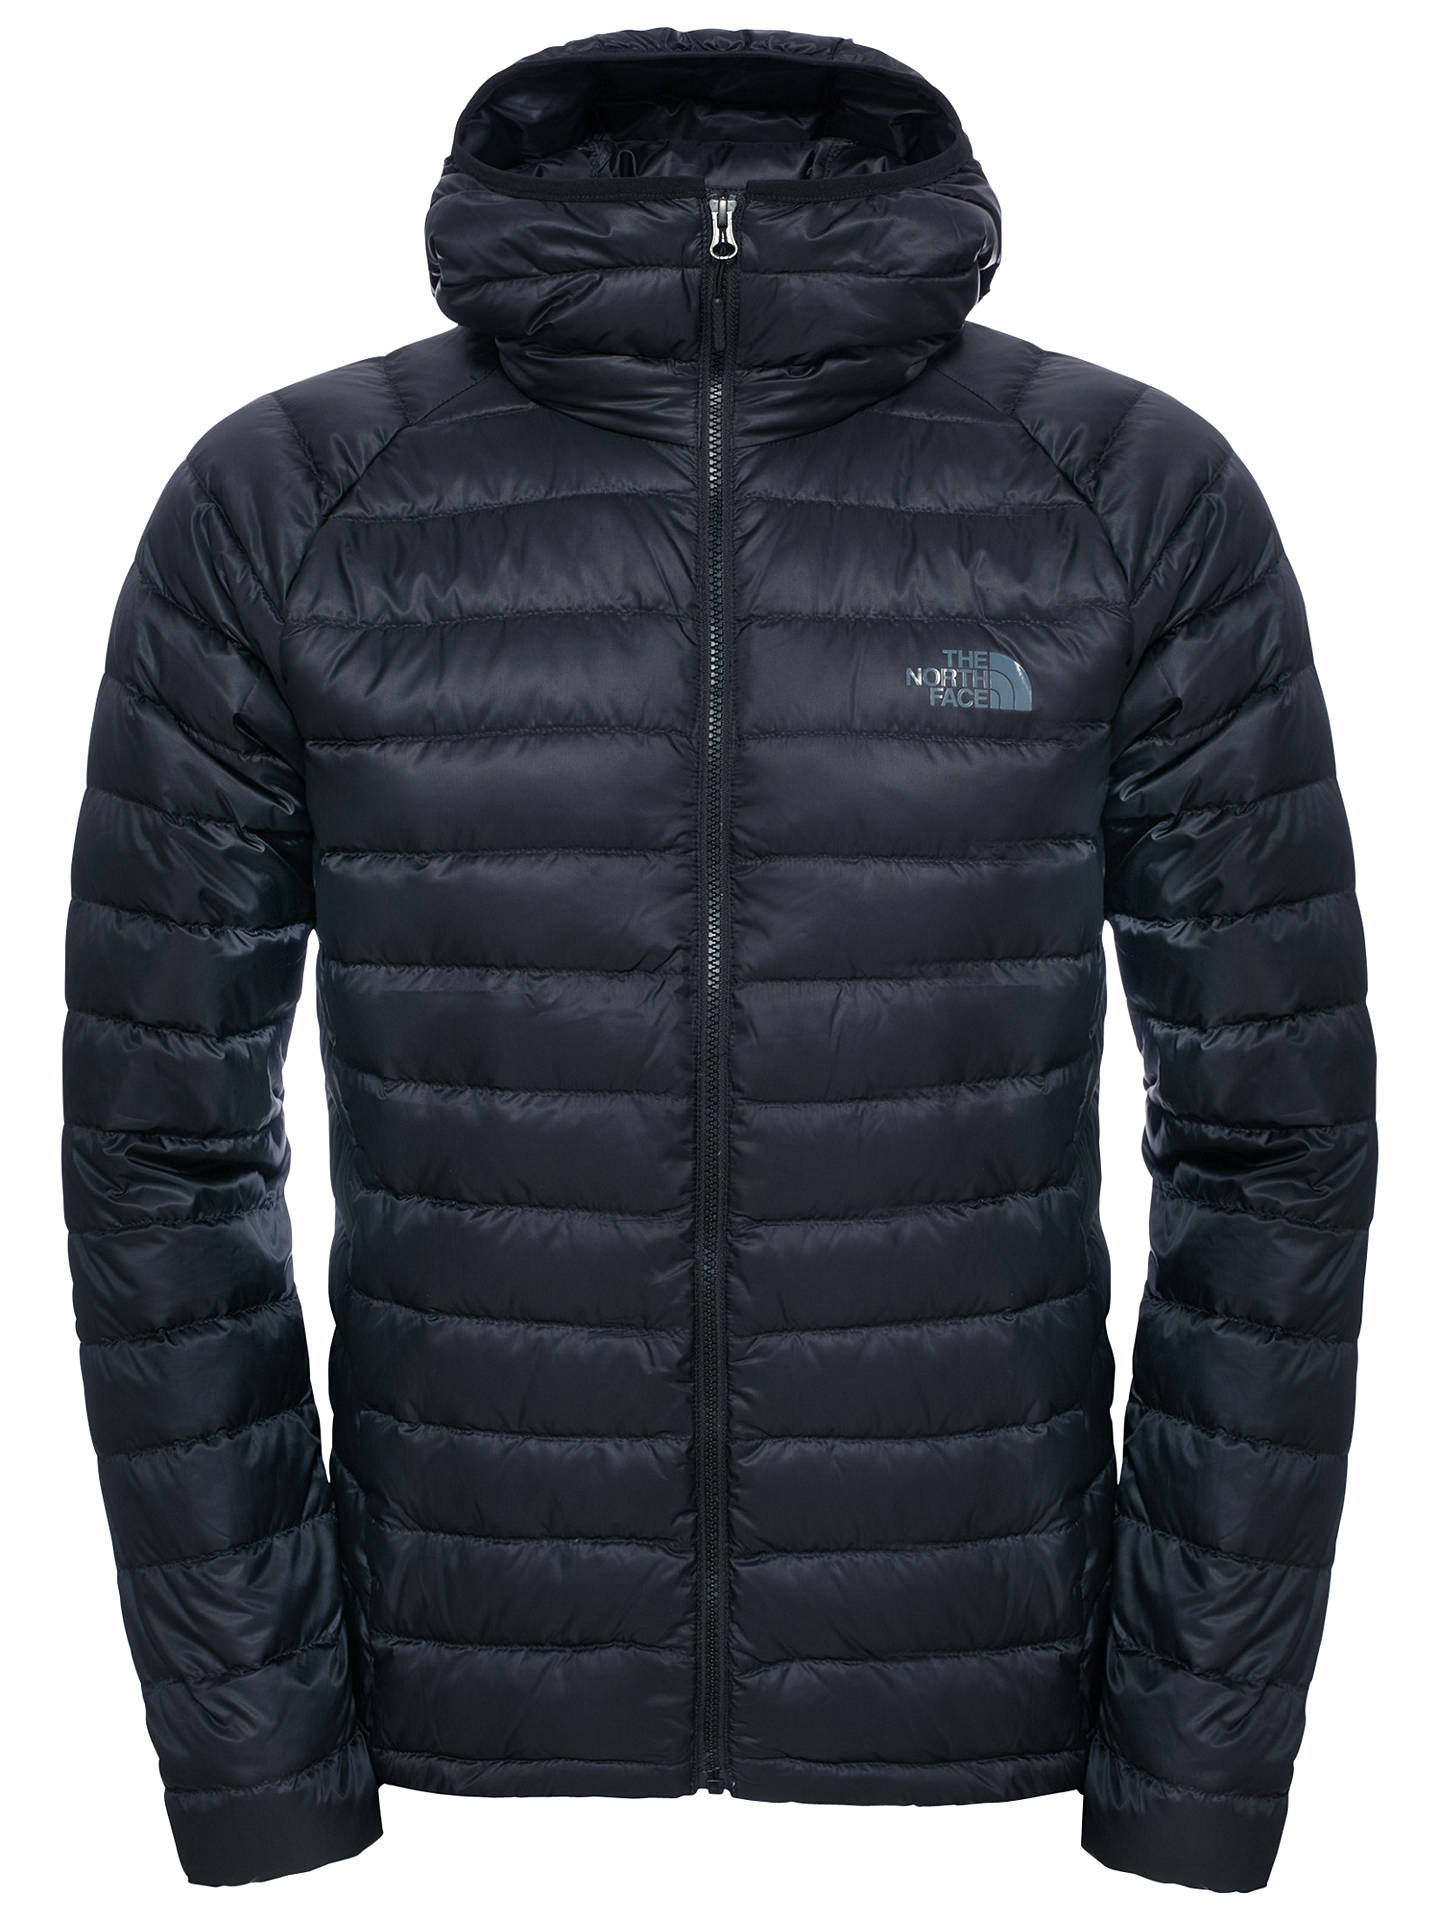 47c4955ff92c The North Face Men s Trevail Hooded Jacket at John Lewis   Partners